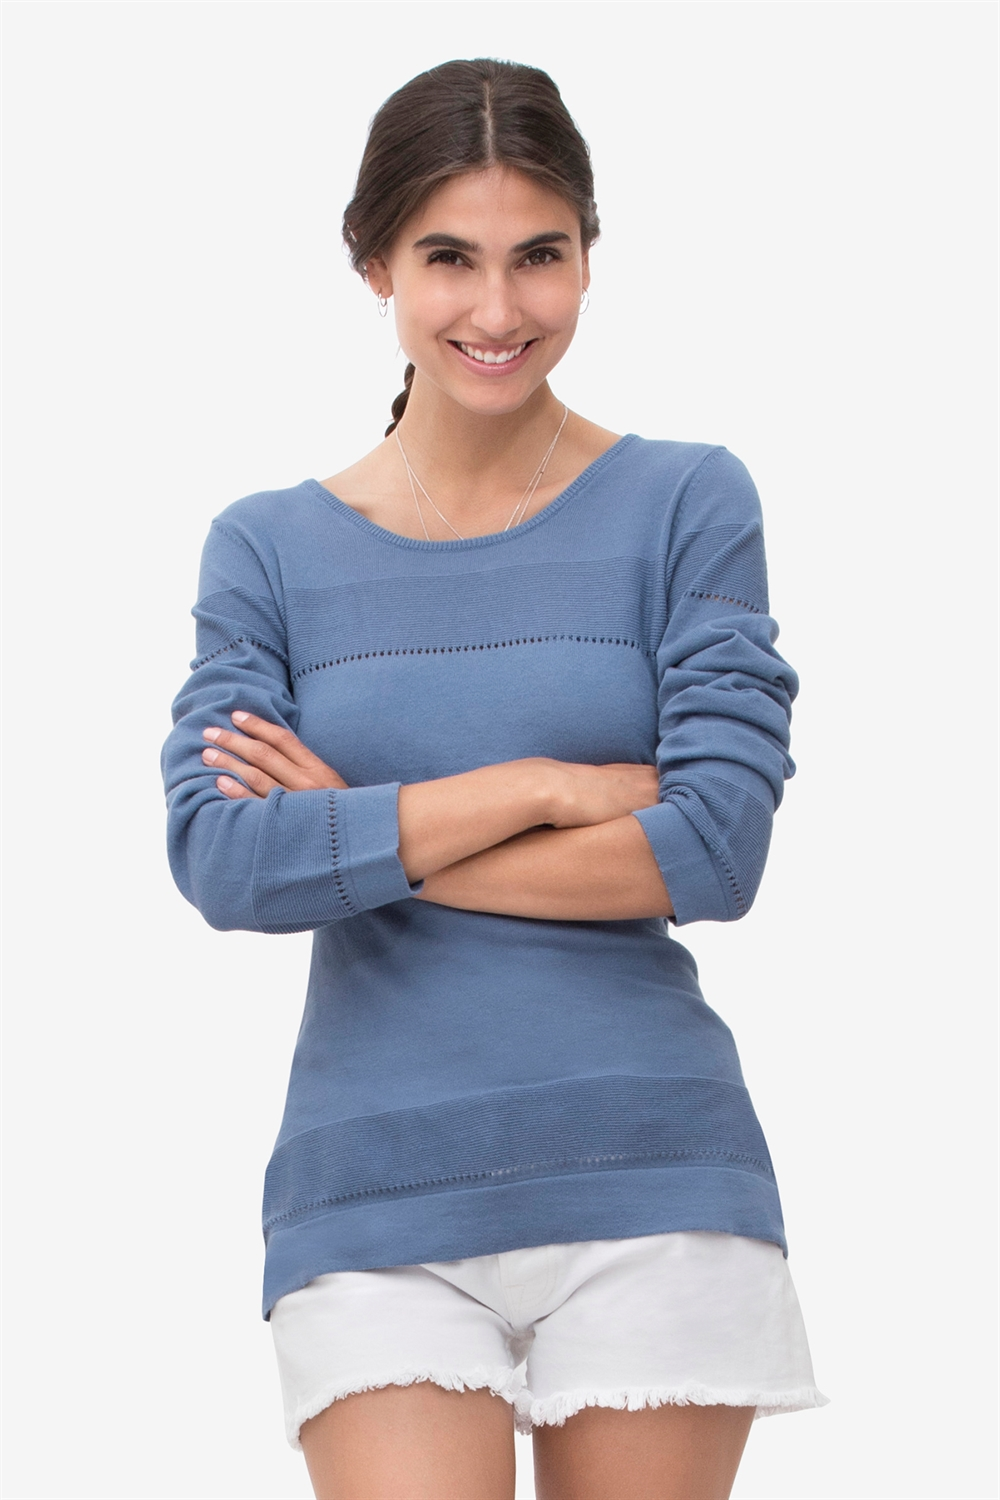 Blue nursing tee with fine knit pattern- 100% organic cotton